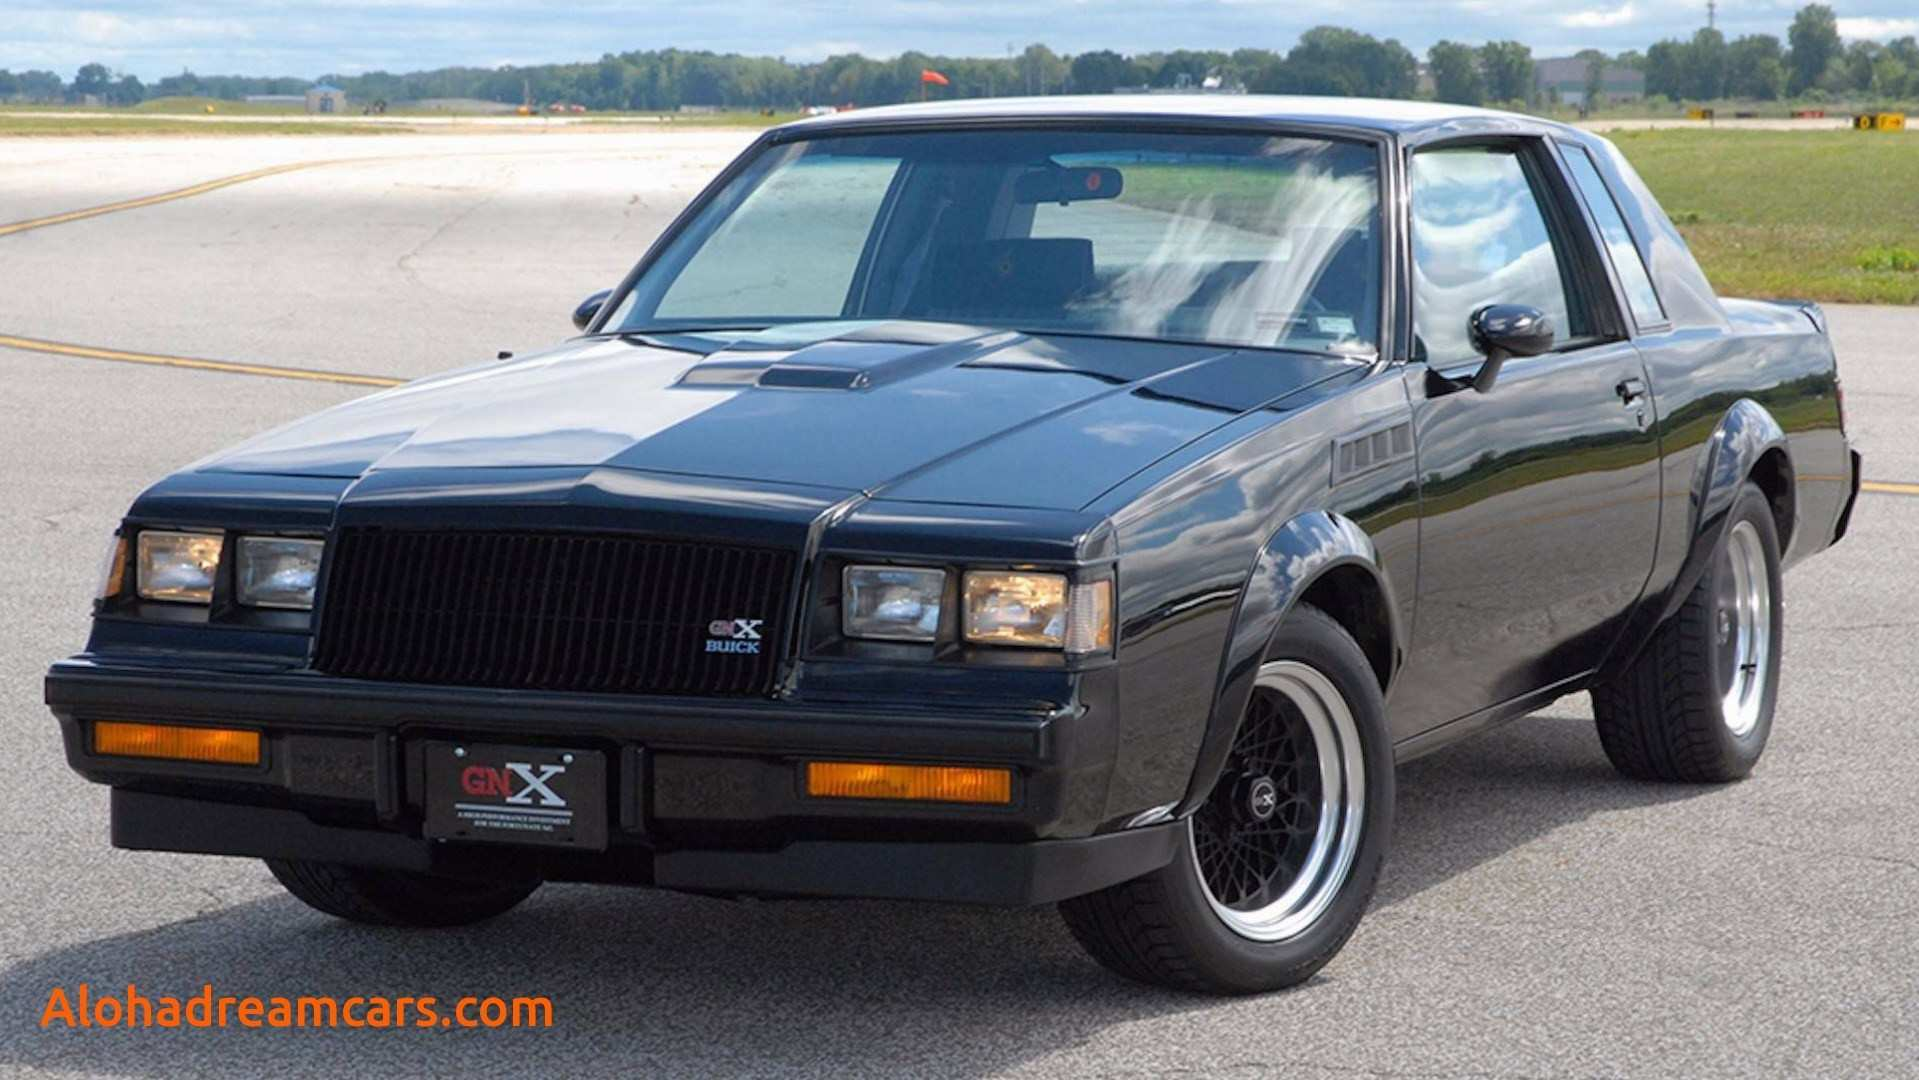 53 Best 2019 Buick Grand National Gnx Images